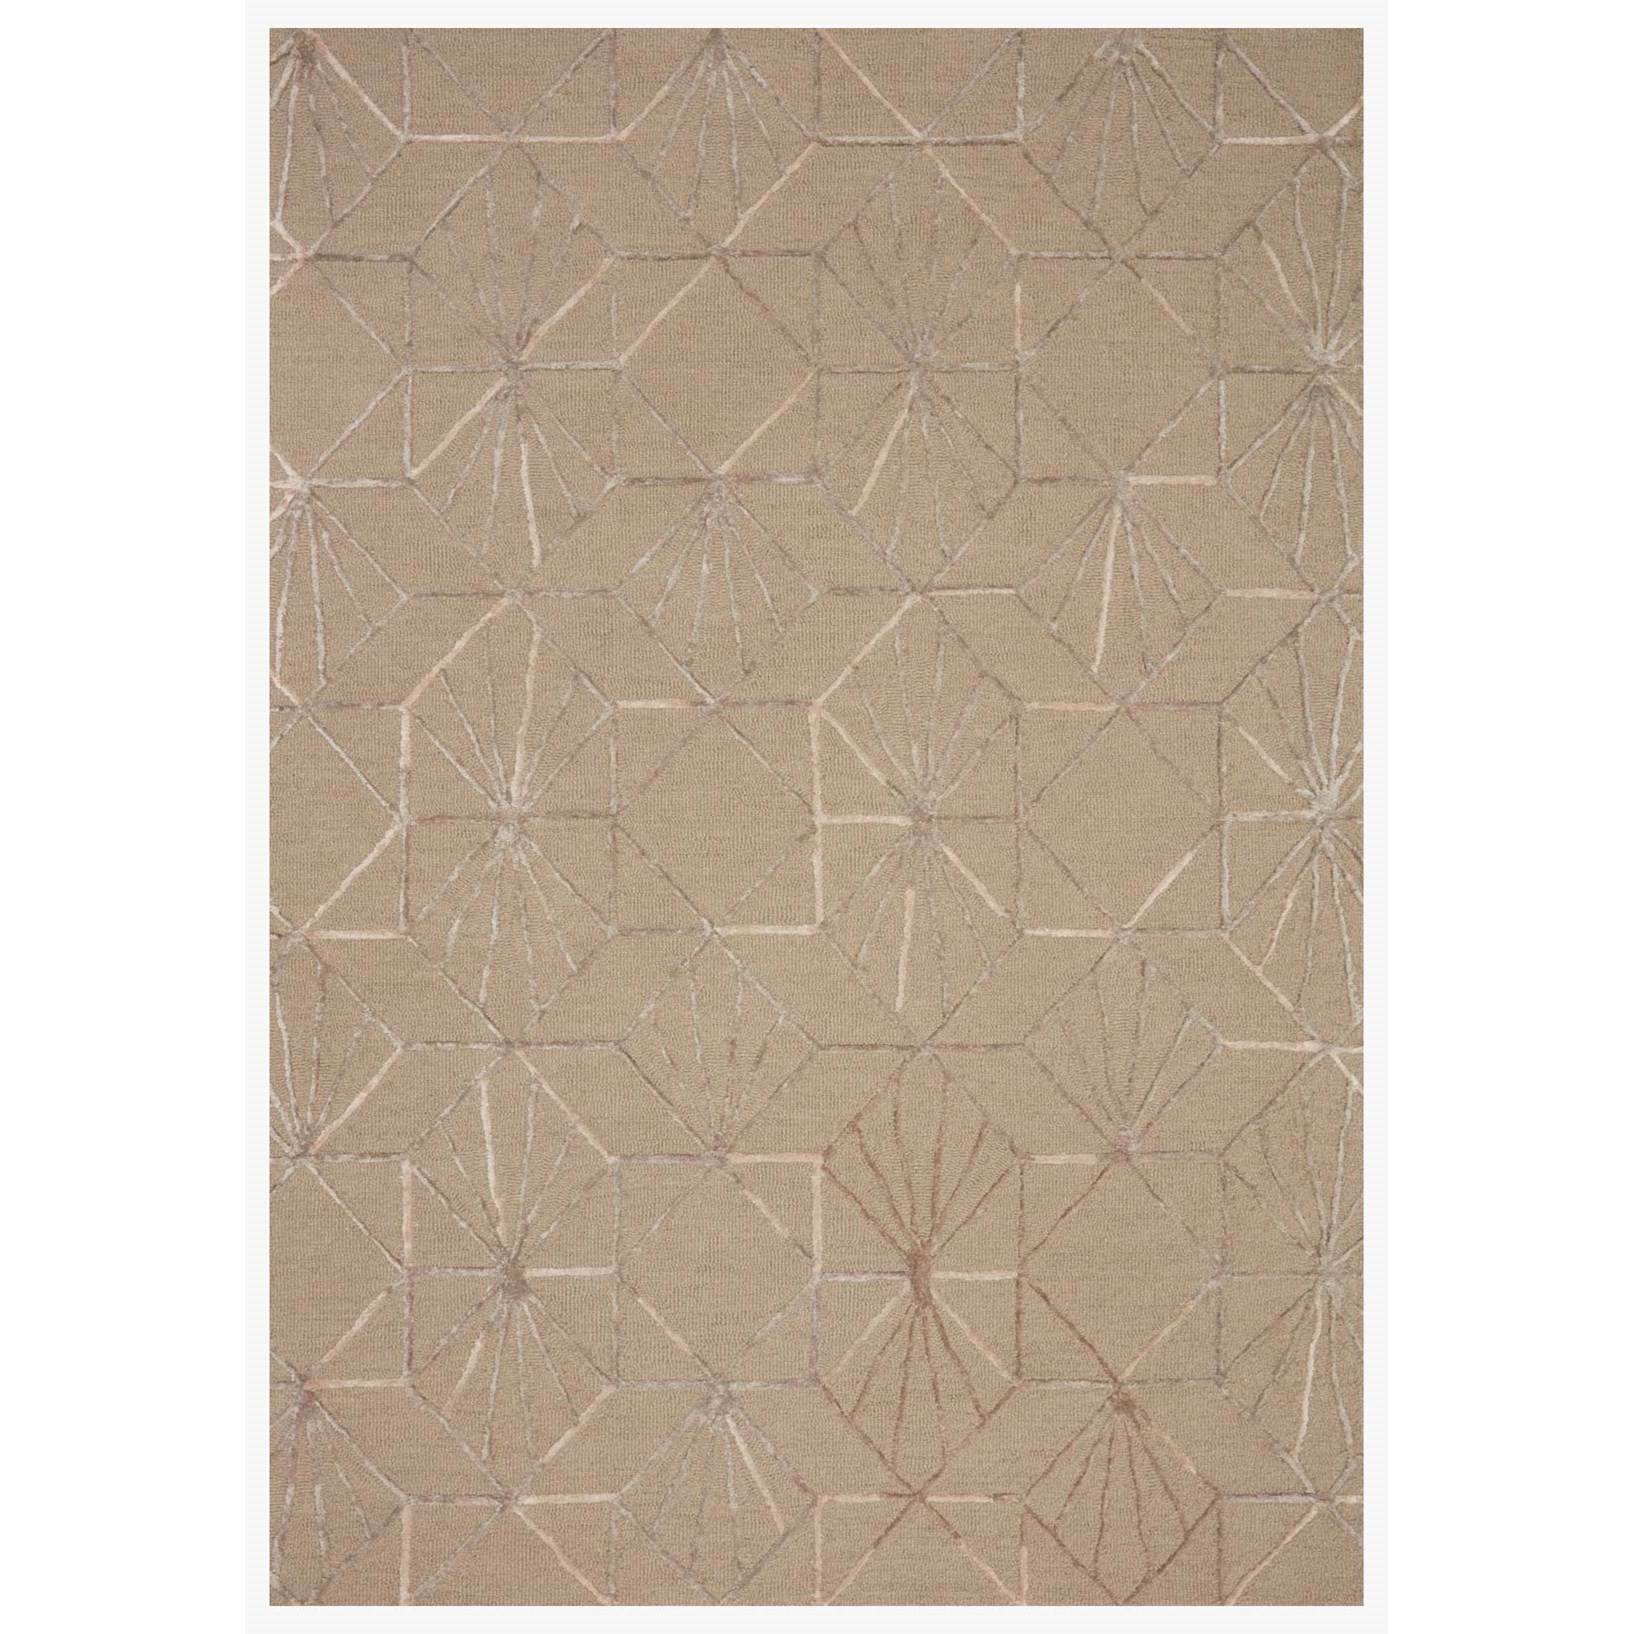 """Verve 2'3"""" x 7'6"""" Sand / Blush Rug by Loloi Rugs at Belfort Furniture"""